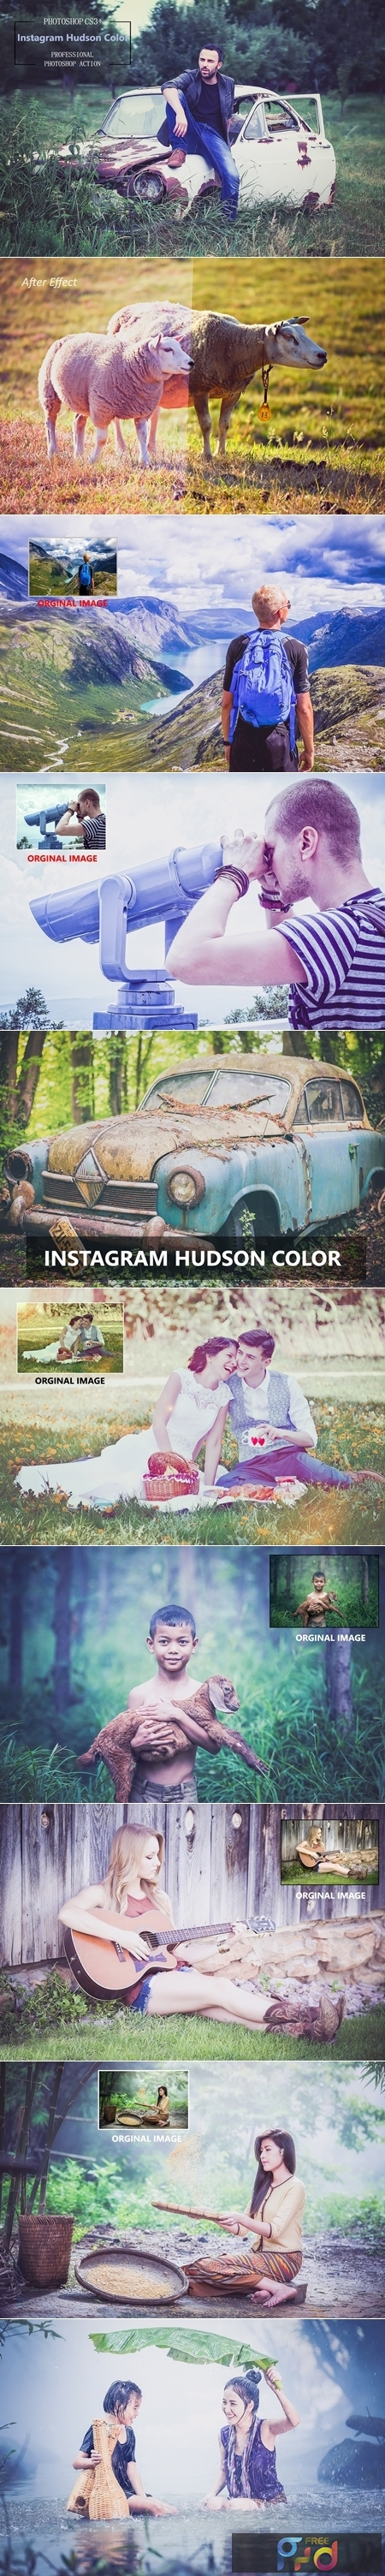 Instagram Hudson Color - Ps Action 4029922 1